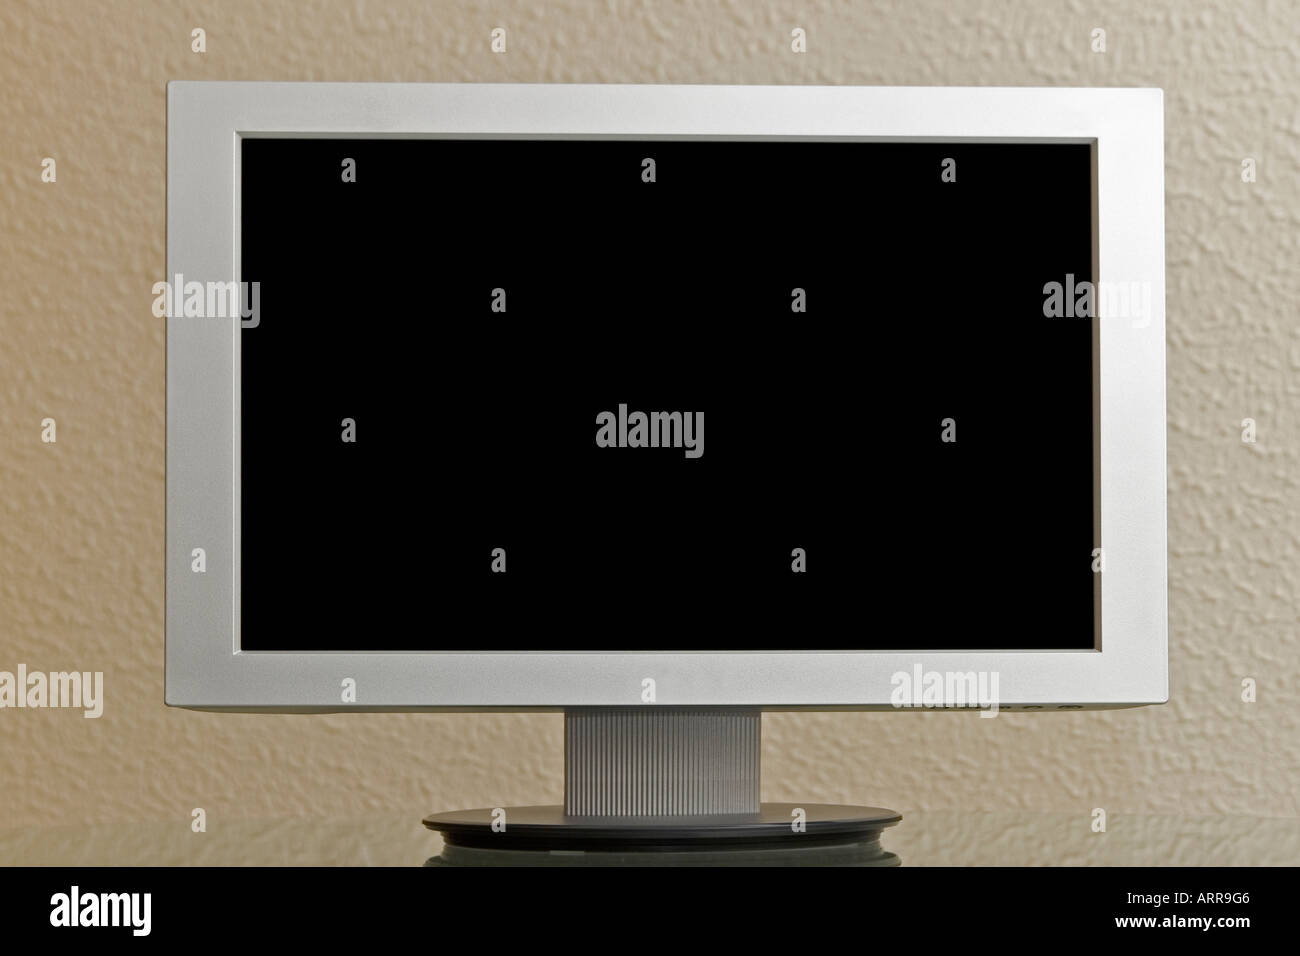 Lcd tv monitor with hd - Stock Image